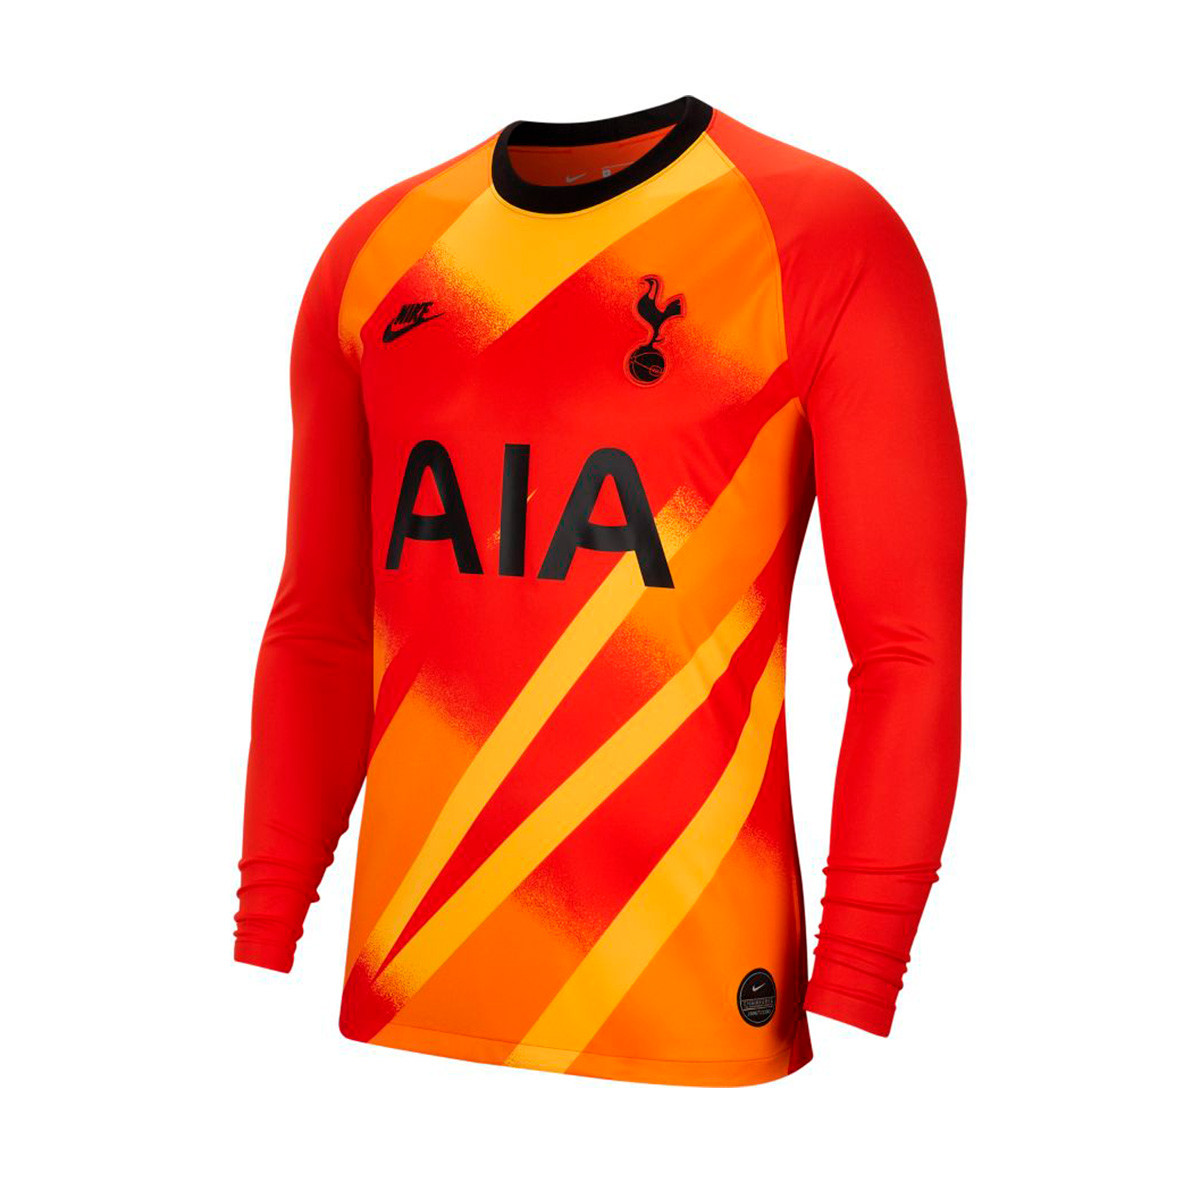 Jersey Nike Tottenham Hotspur Breathe Stadium Goalkeeper 2019 2020 Team Orange Black Football Store Futbol Emotion